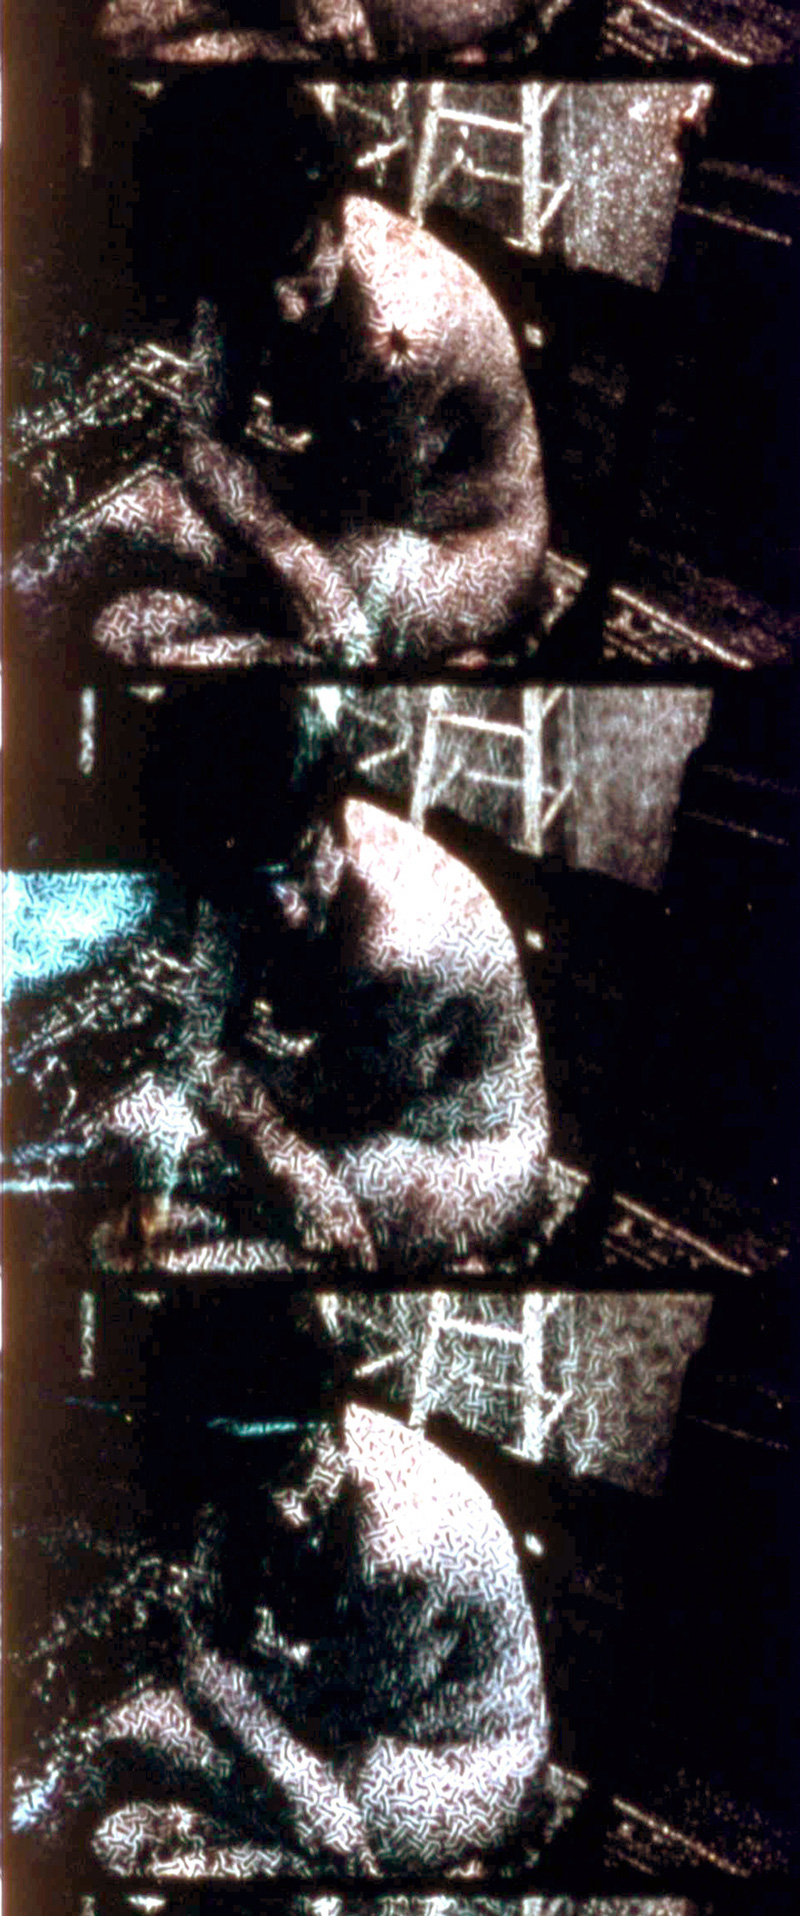 Bruce Elder <Eros and Wonder> - Canada, 2002, Color, Opt, 104min, 16mm2008년 5월 13일 국내 최초 상영